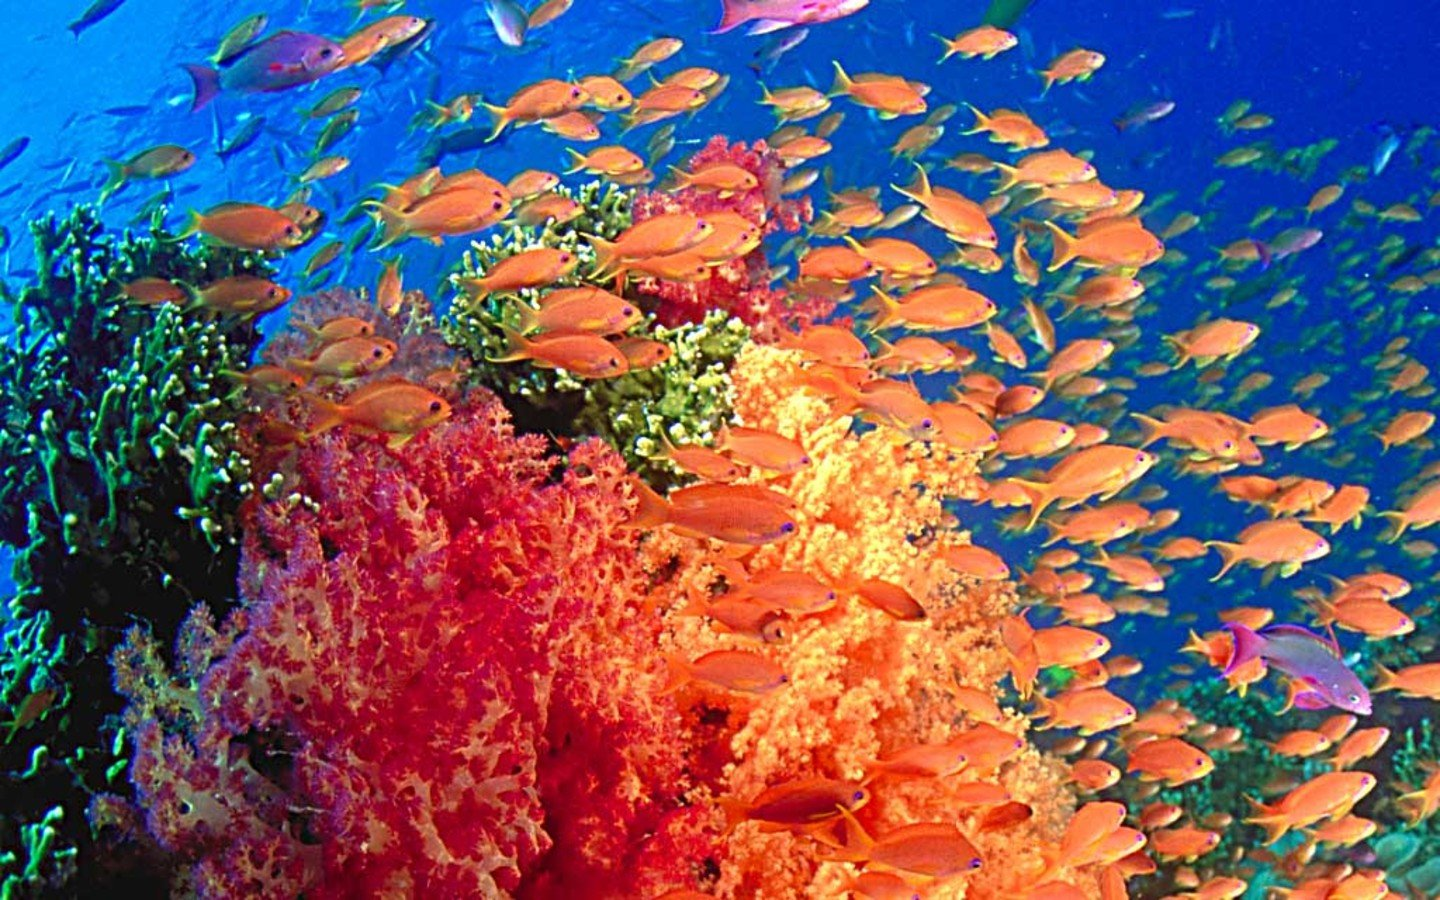 Wallpapers Ocean Life HD Wallpaper HQ Desktop Background 1440x900